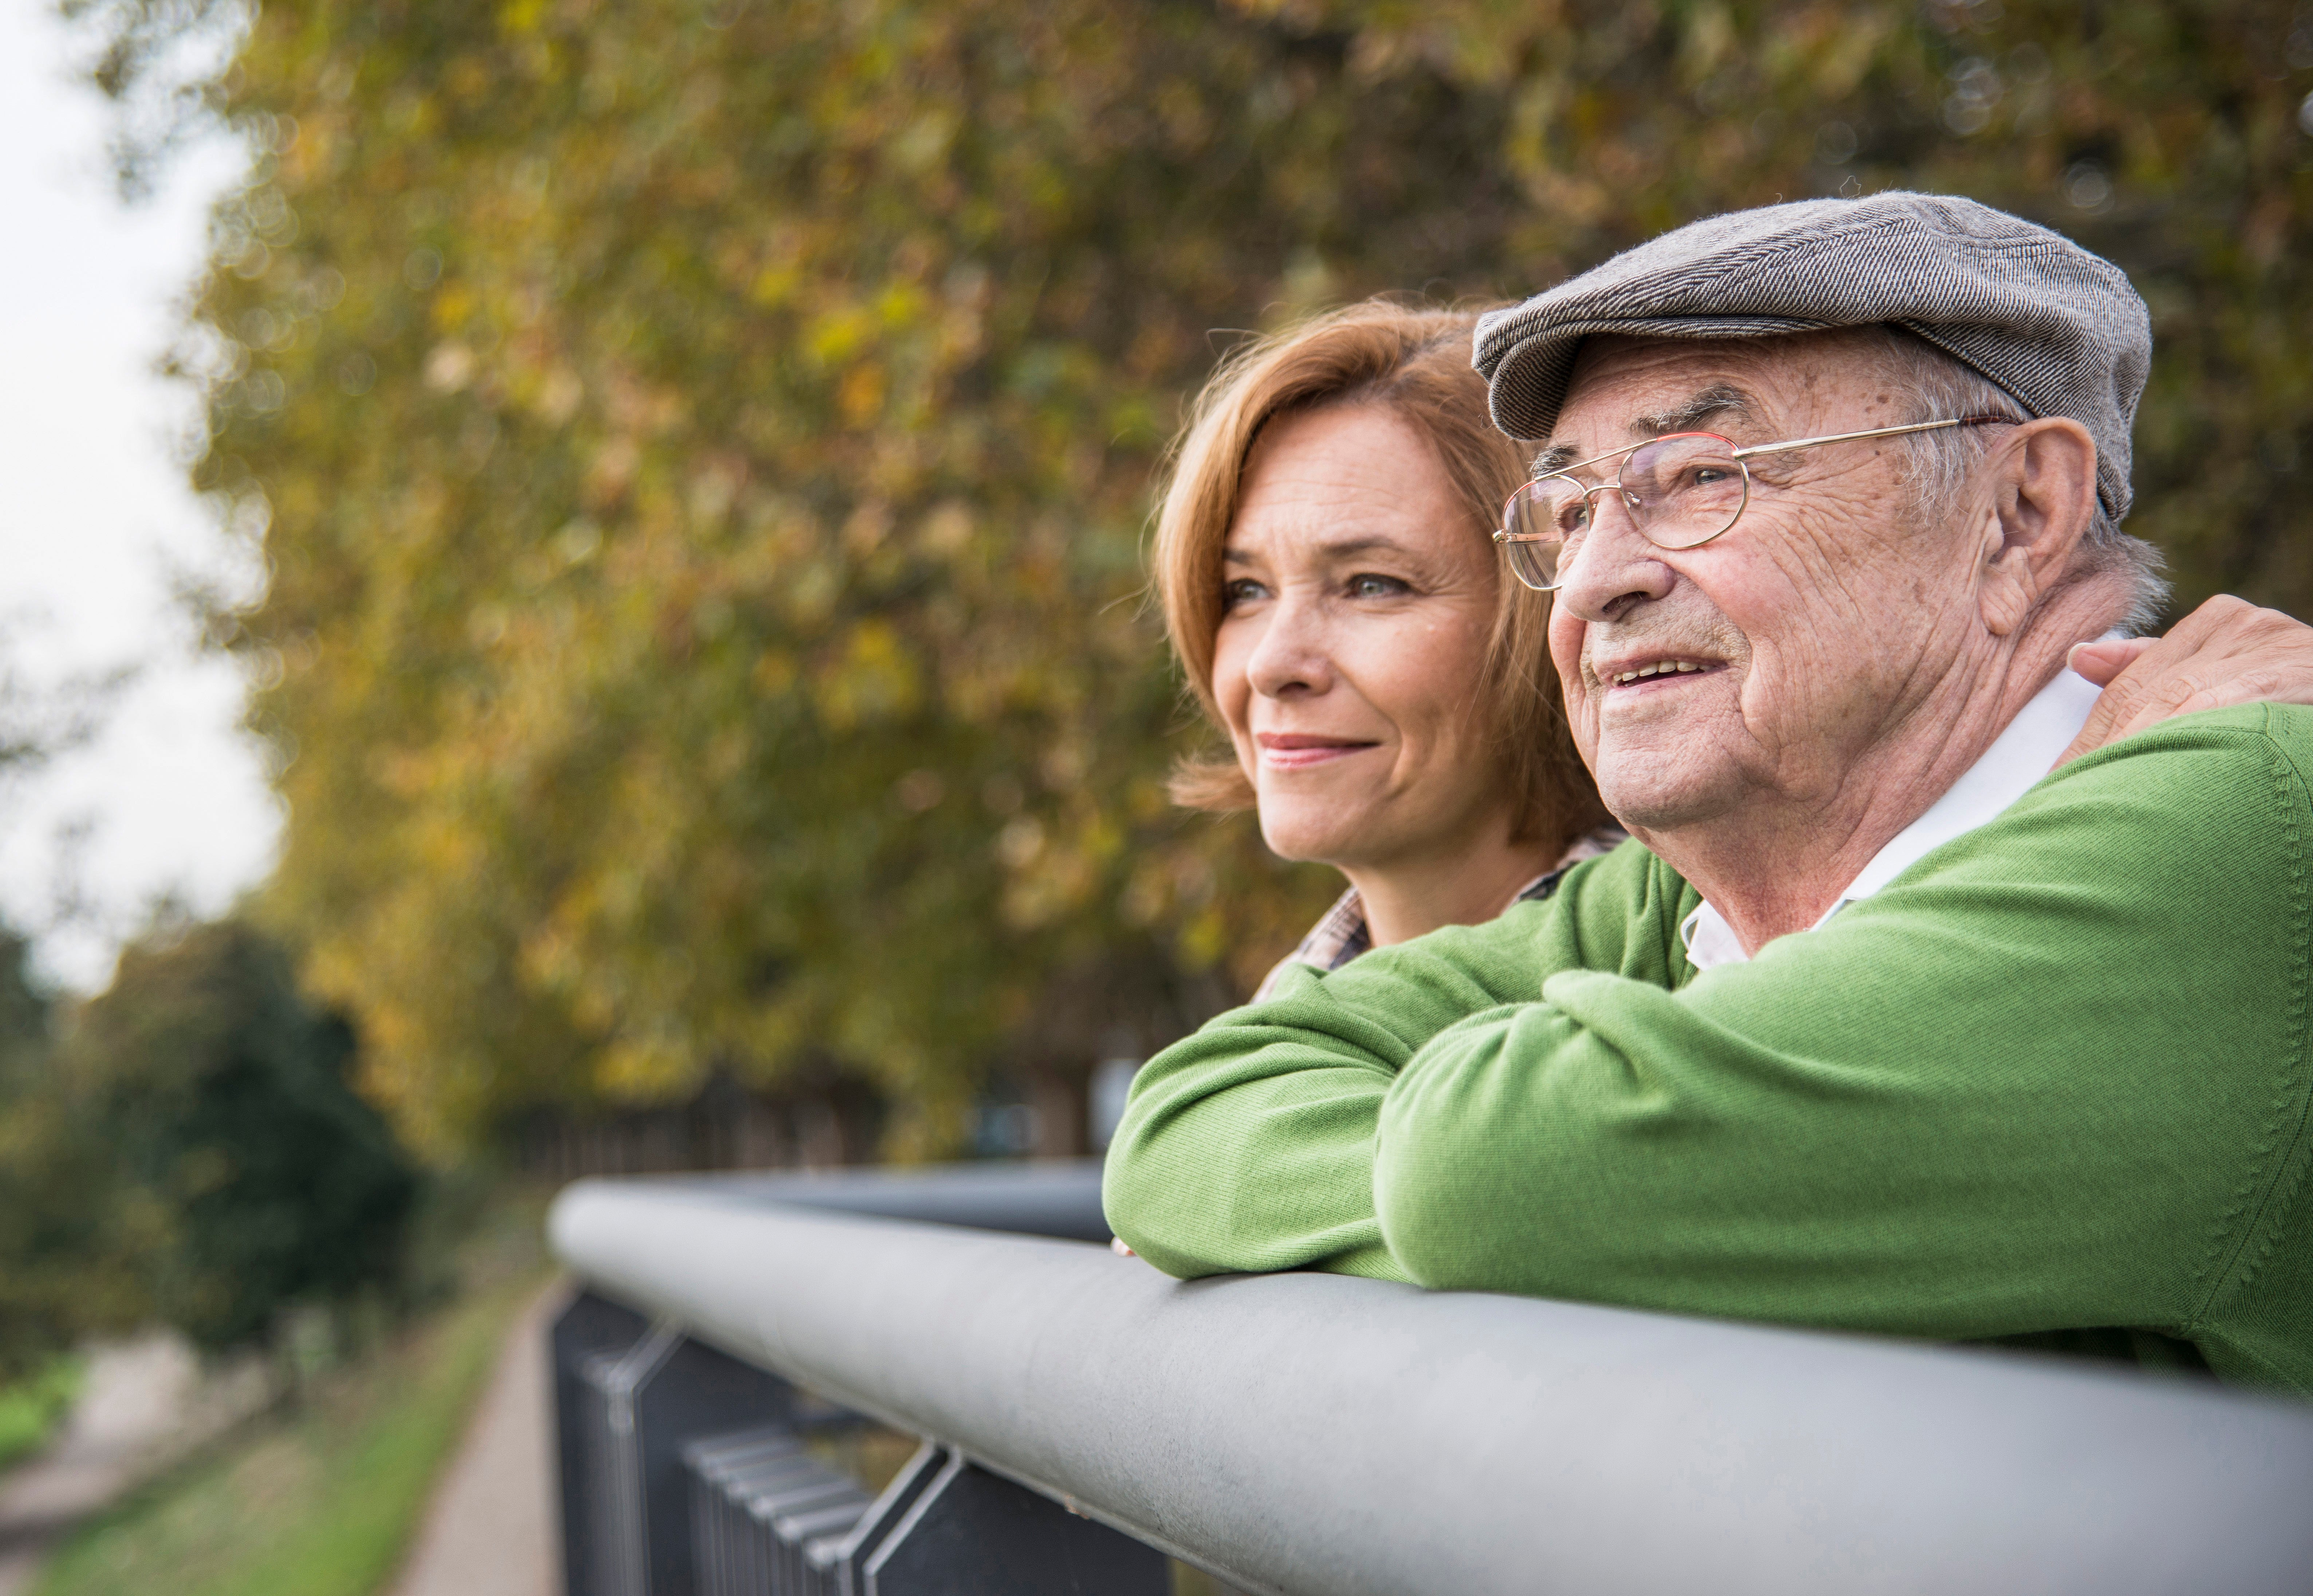 Five strategies for dealing with incontinence in difficult social situations